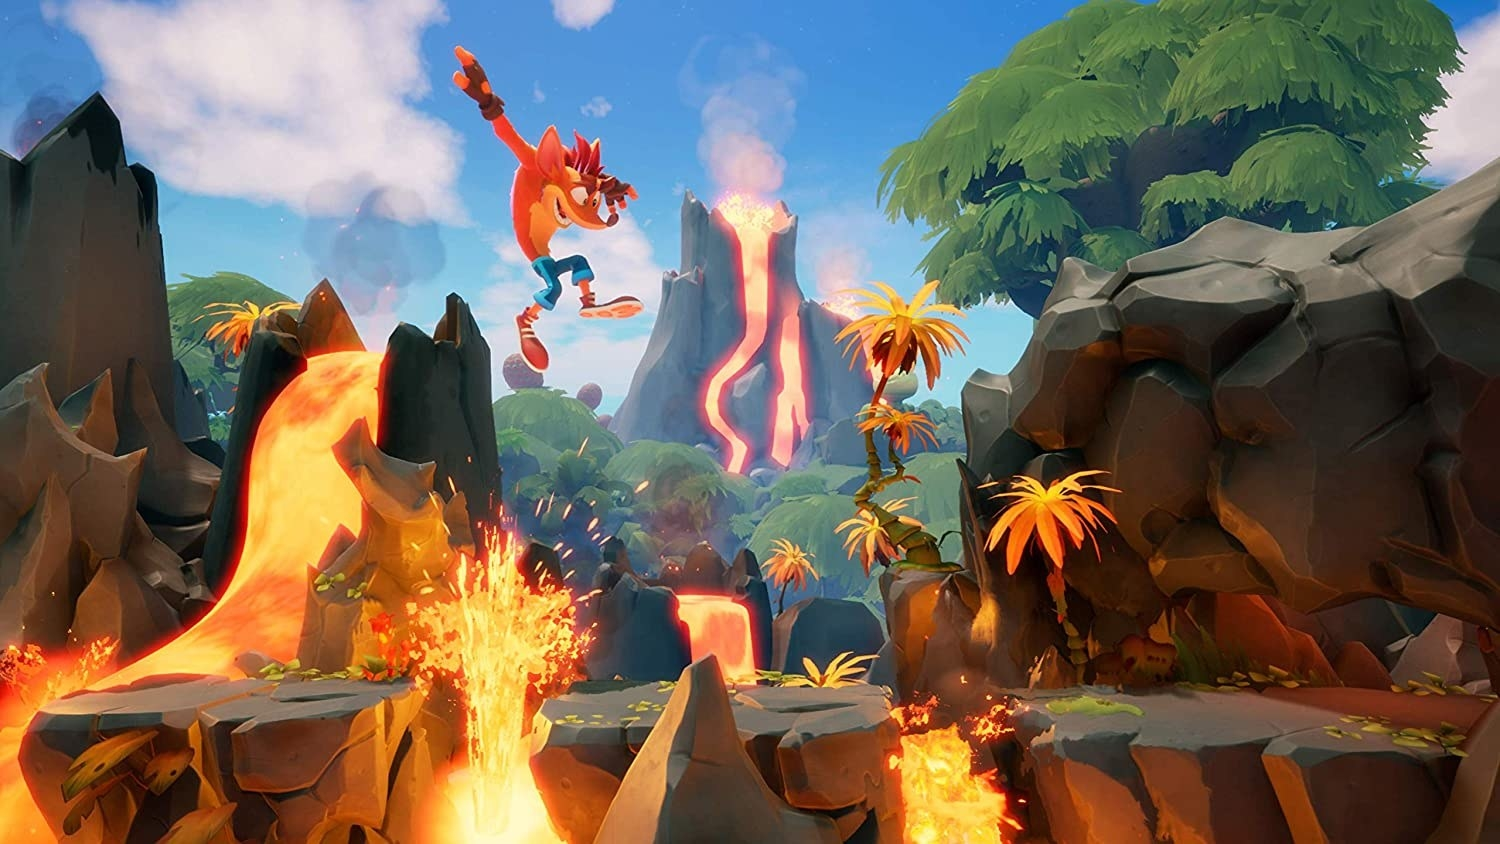 Crash Bandicoot jumping over pits of molten lava